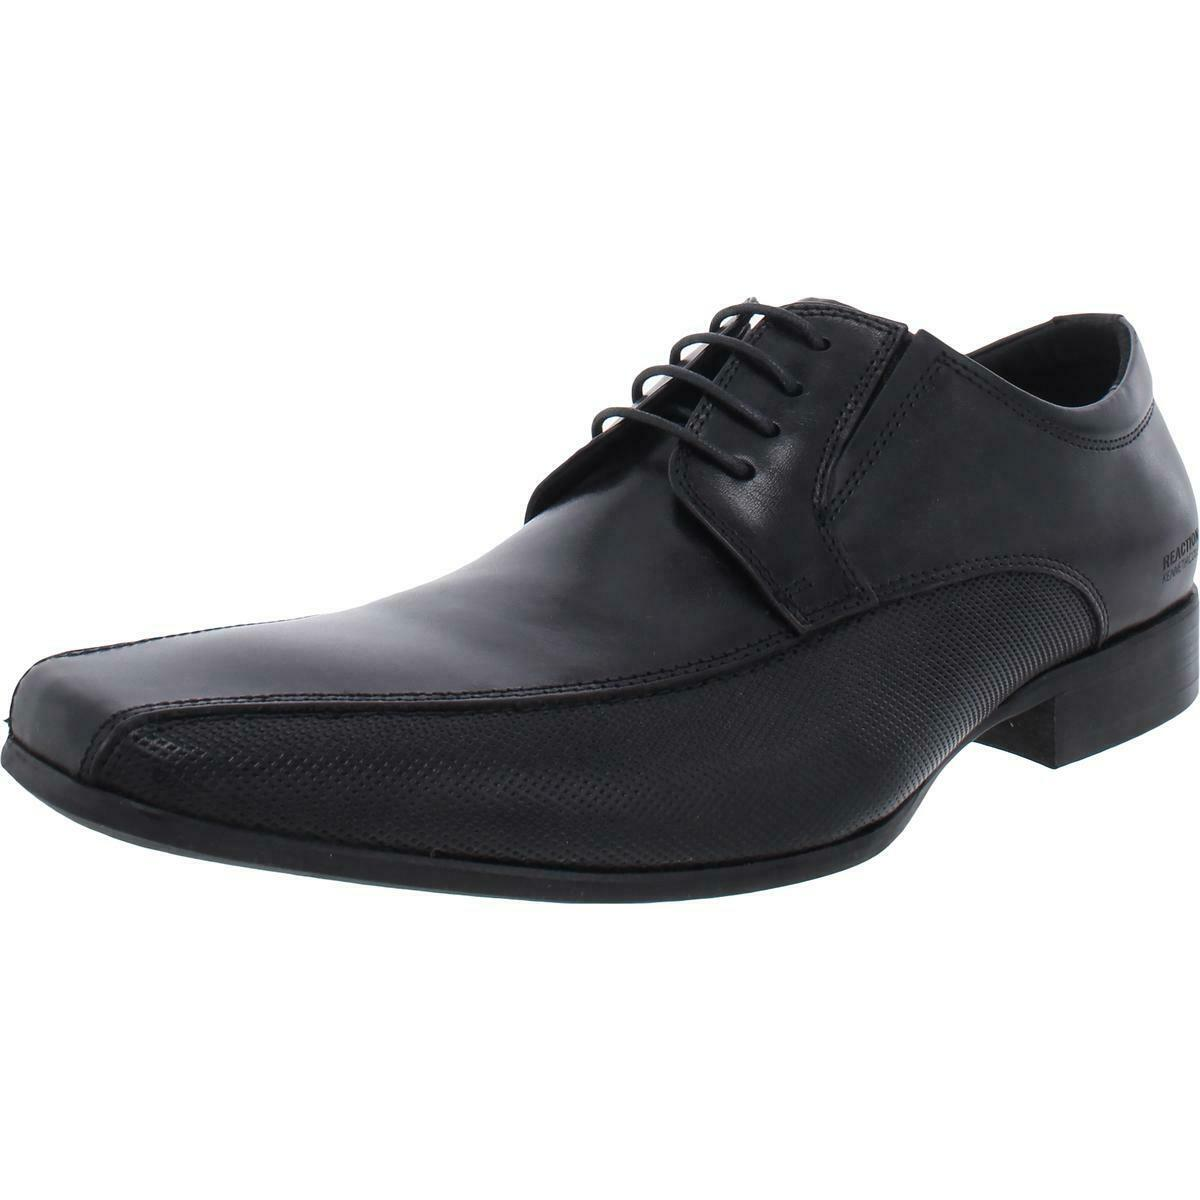 Kenneth Cole Reaction Mens Bro-Tential Leather Dress Oxfords Shoes BHFO 3031